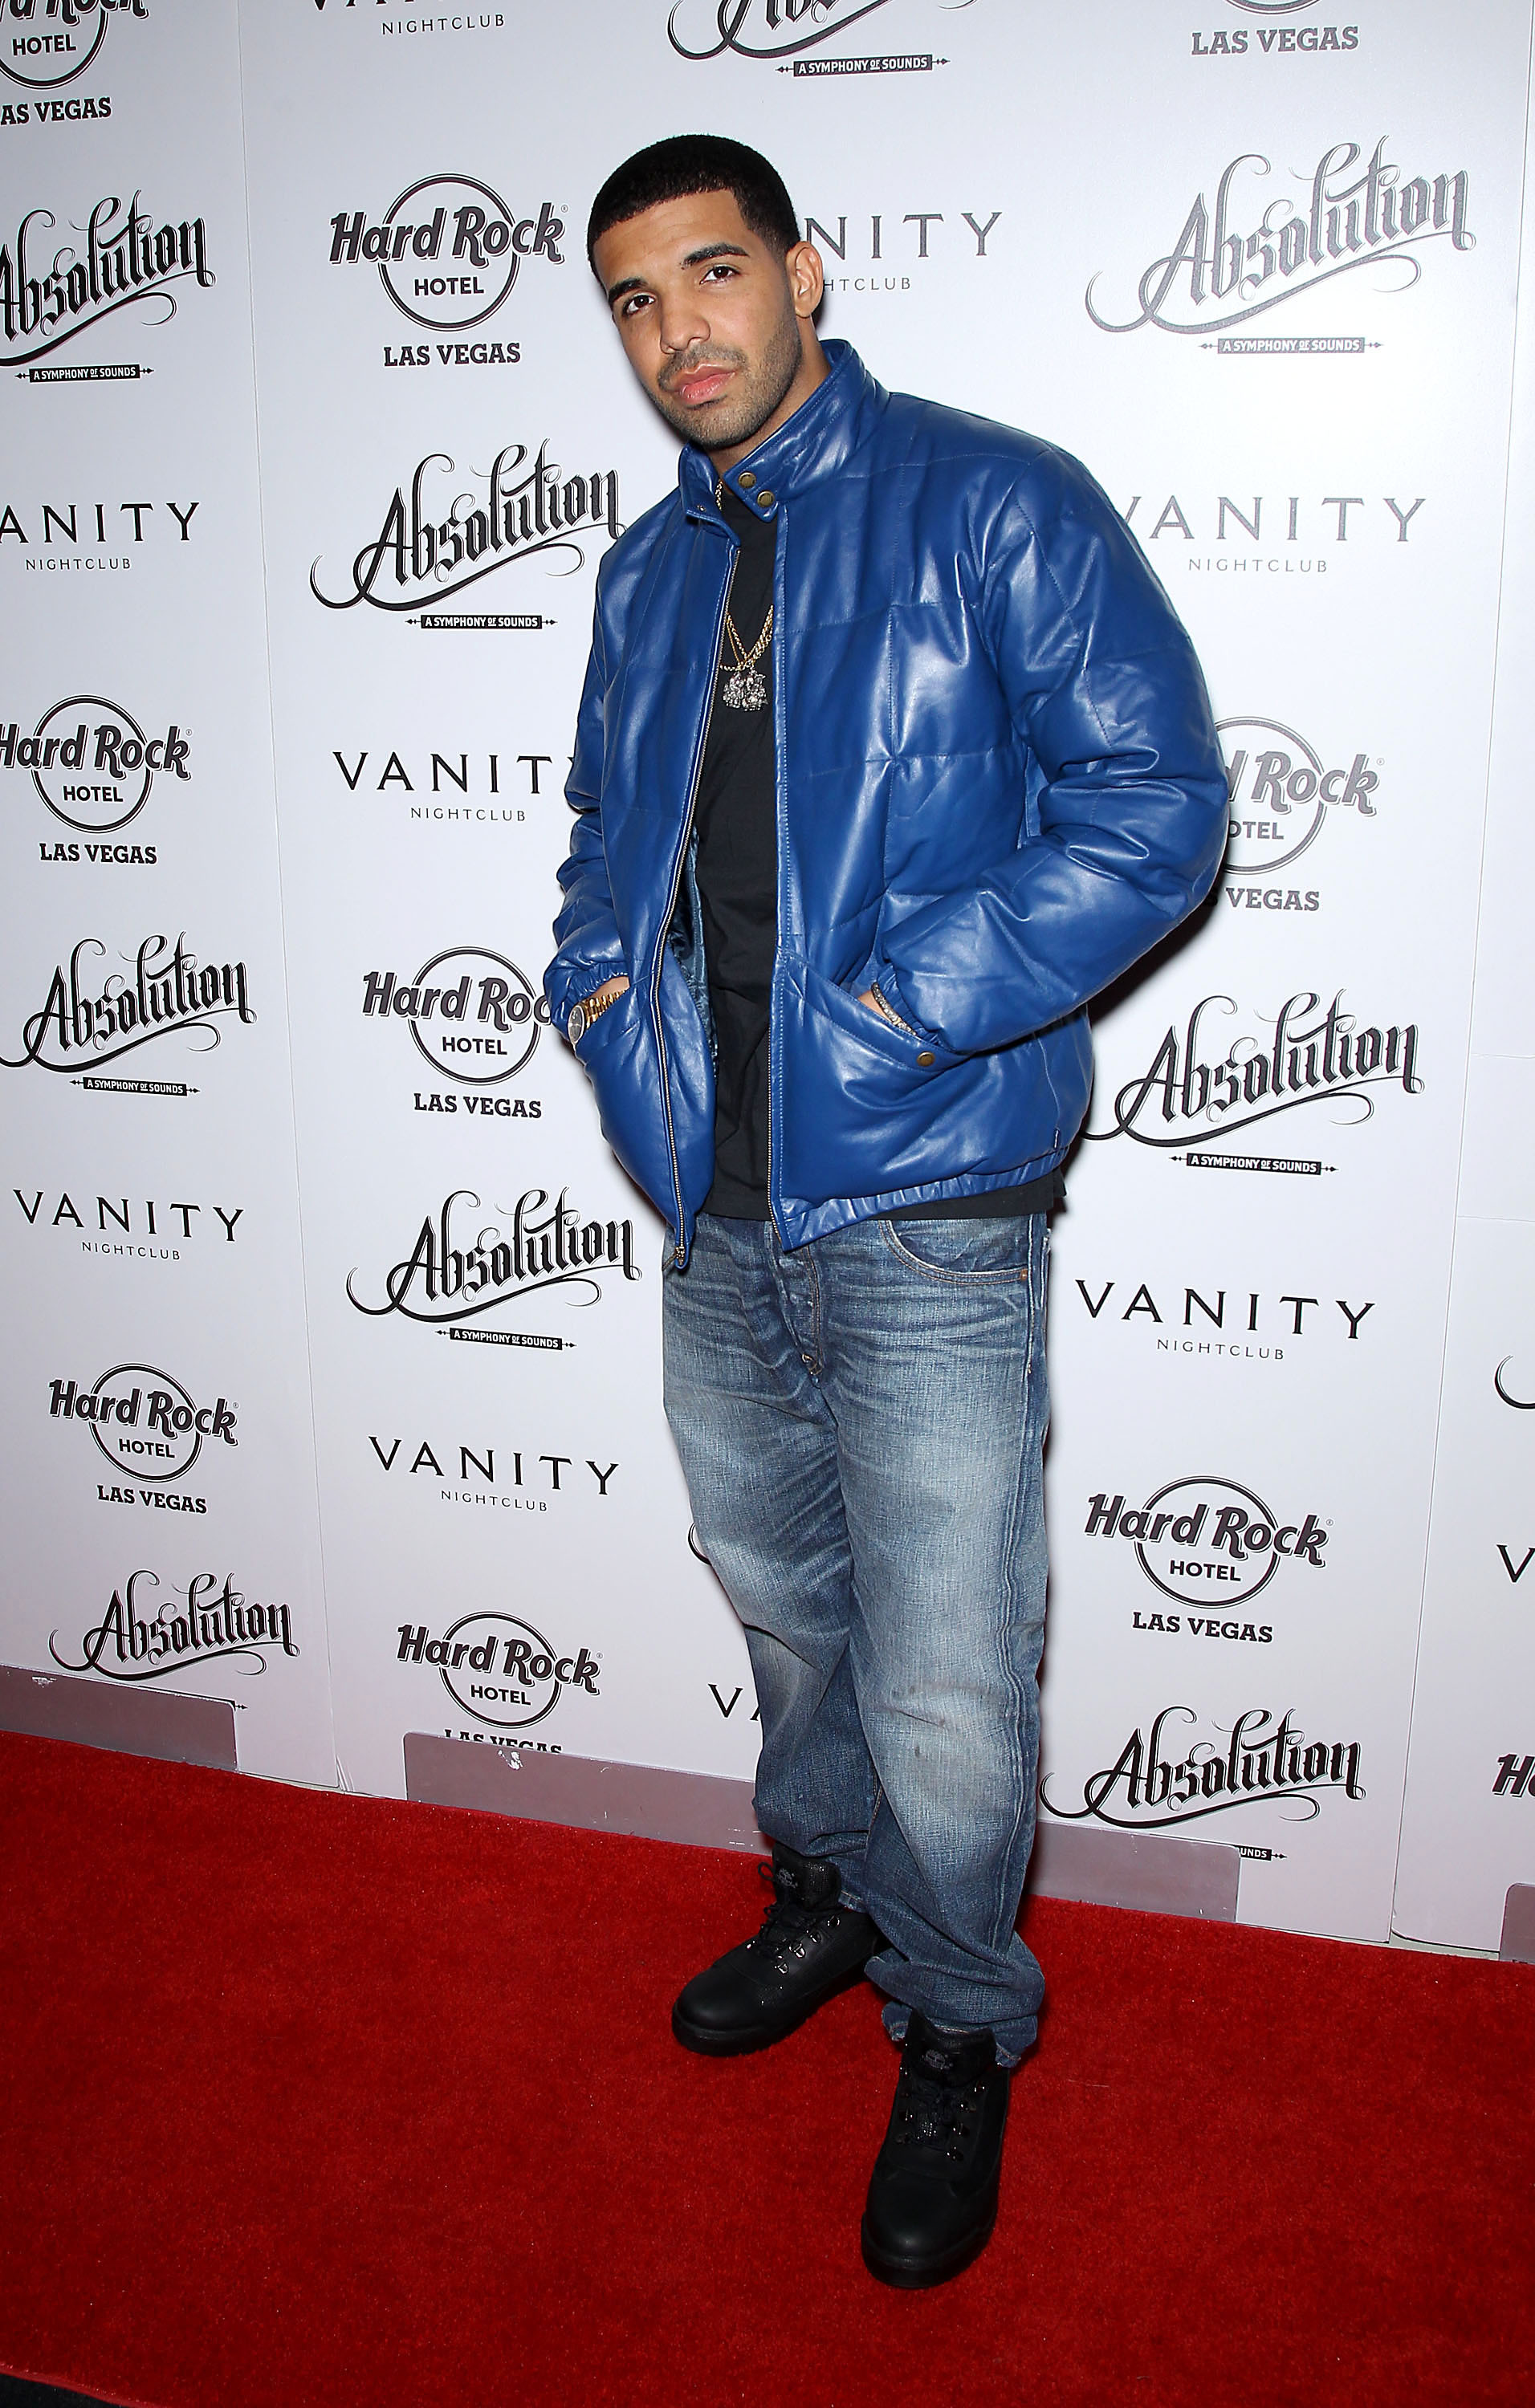 Drake                  Rapper Drake hosts After Concert Party at Vanity Nightclub at Hard Rock Hotel and Casino                  Las Vegas, Nevada - 01.01.12                                    Featuring: Drake                  Where: United States                  When: 01 Jan 2012                  Credit: WENN